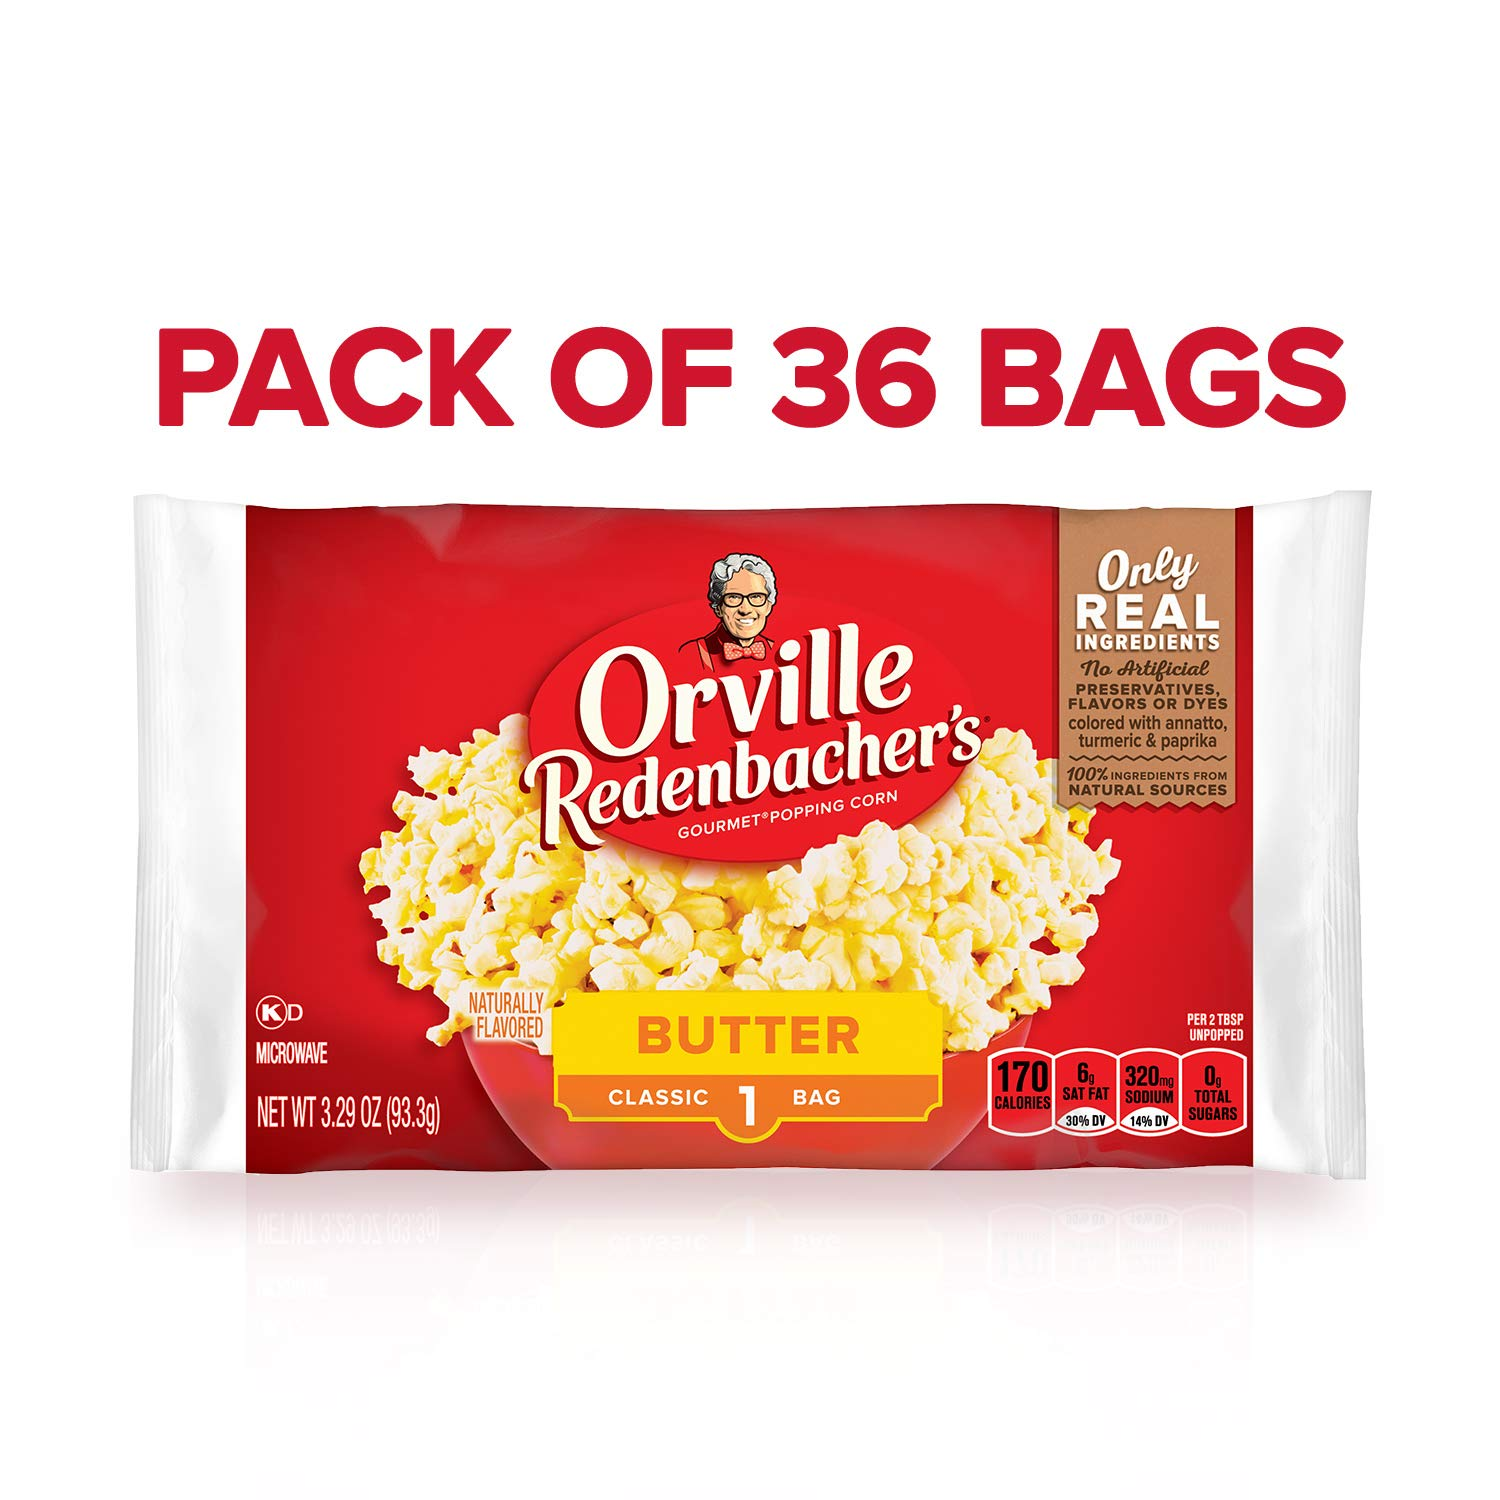 Orville Redenbacher's Butter Popcorn, 3.29 Ounce Classic Bag, Pack of 36 by Orville Redenbacher's